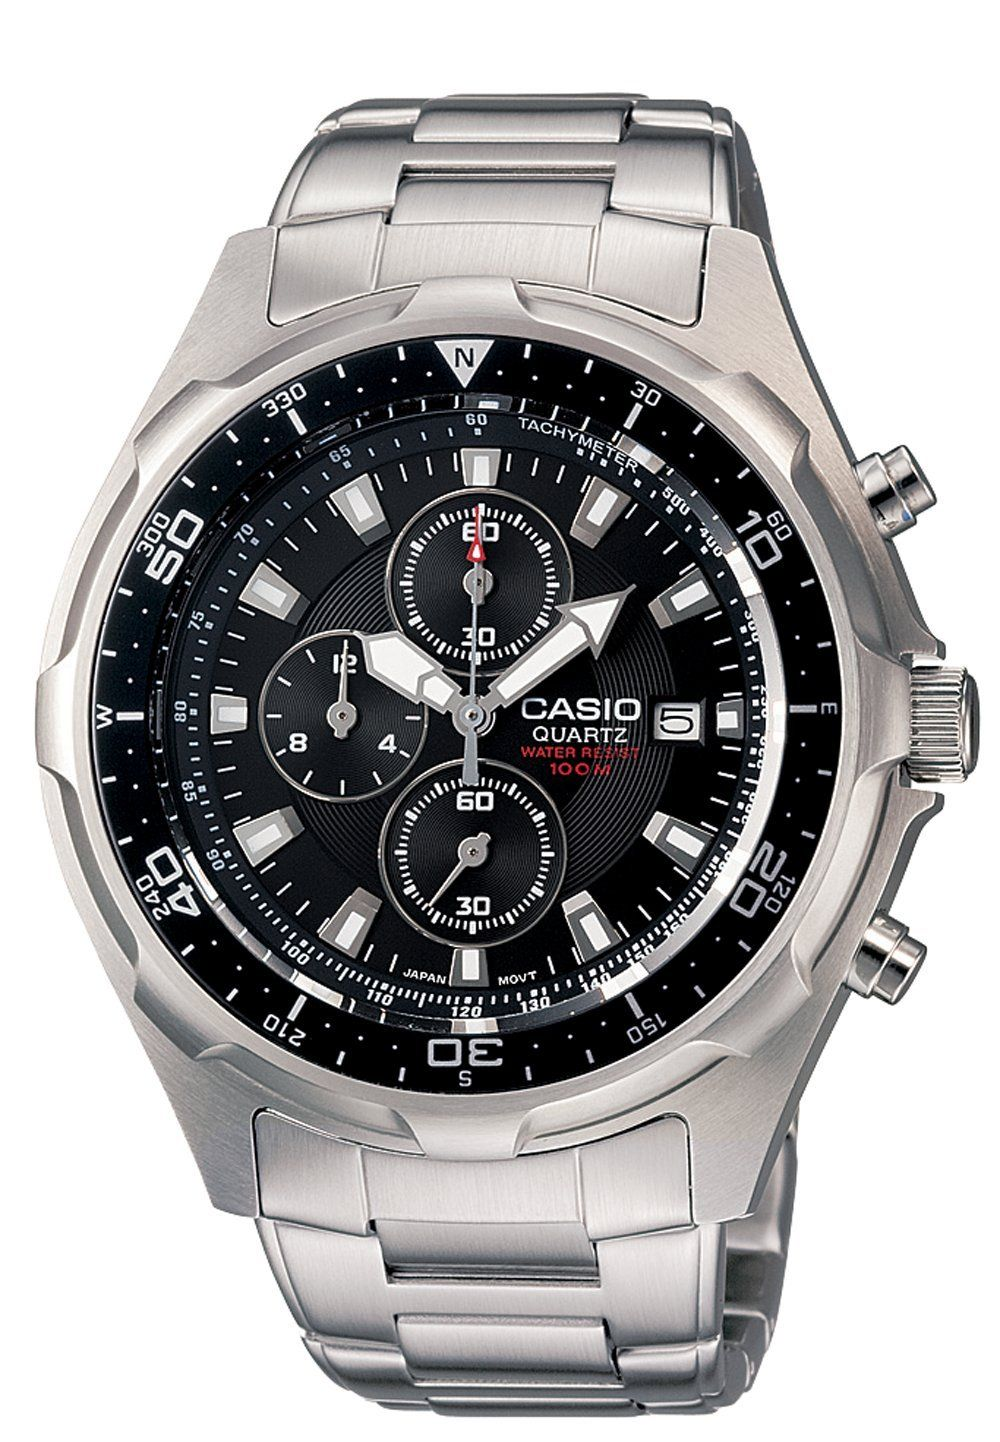 casio men s amw330d 1av dive chronograph stainless steel watch casio men s amw330d 1av dive chronograph stainless steel watch